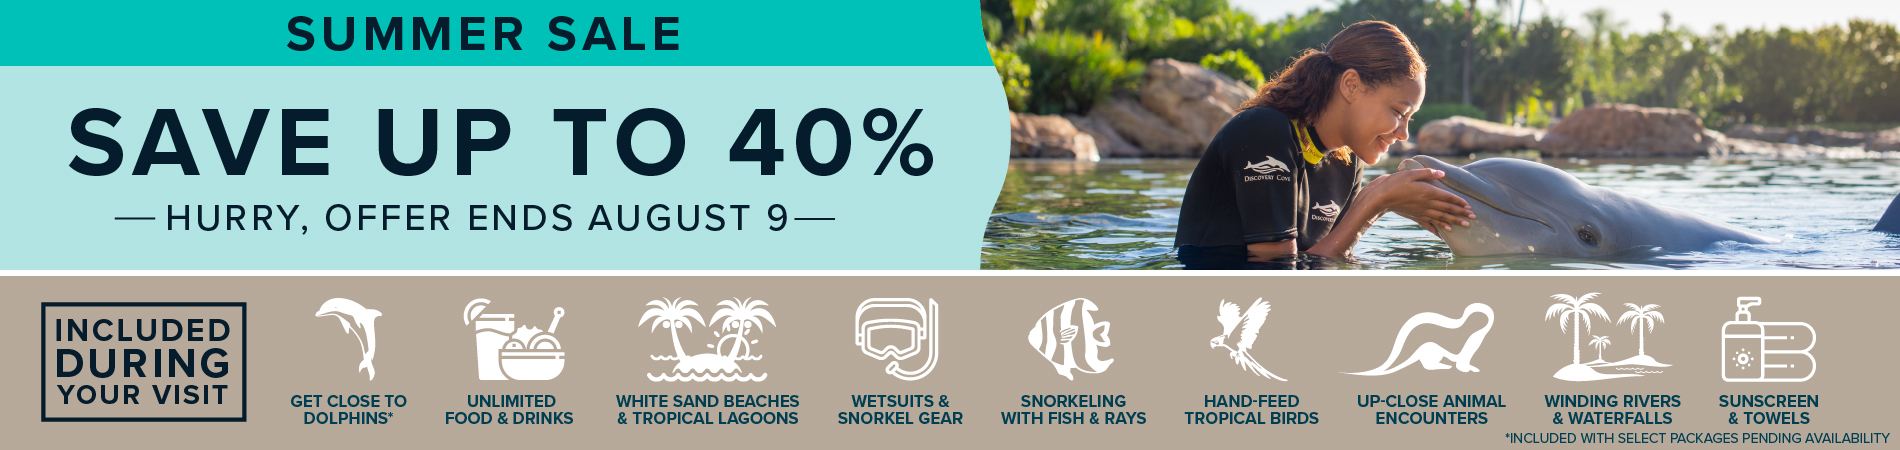 Discovery Cove Summer Sale